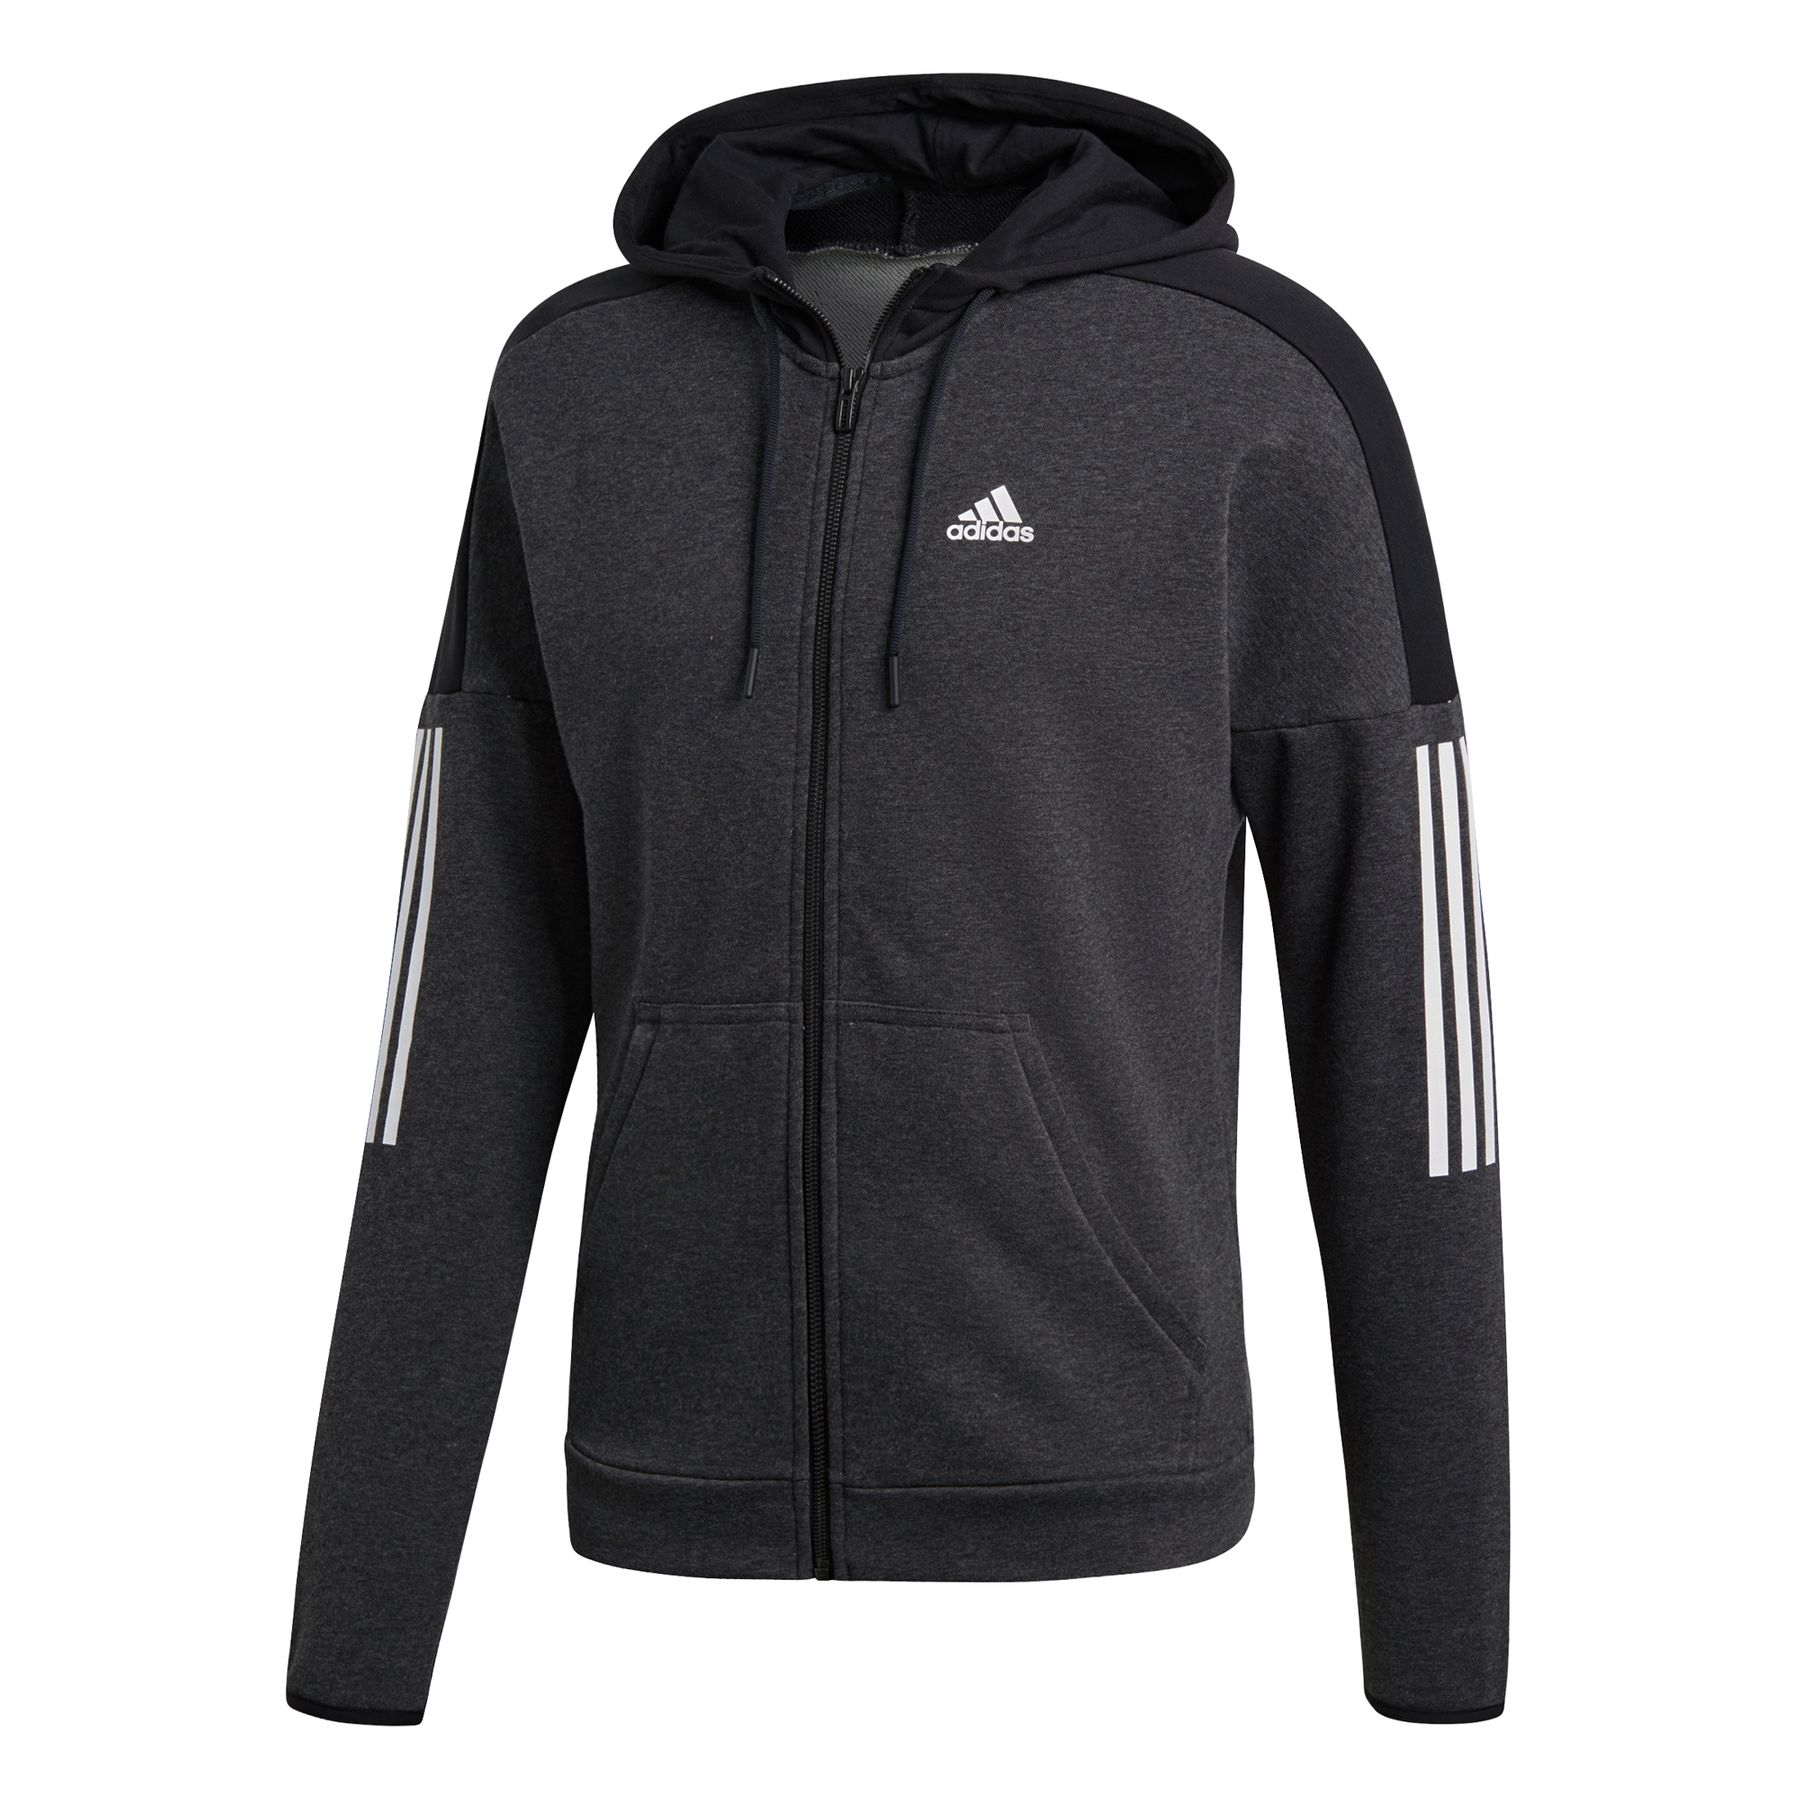 adidas tasche billig, adidas ID Badge of Sport T Shirt